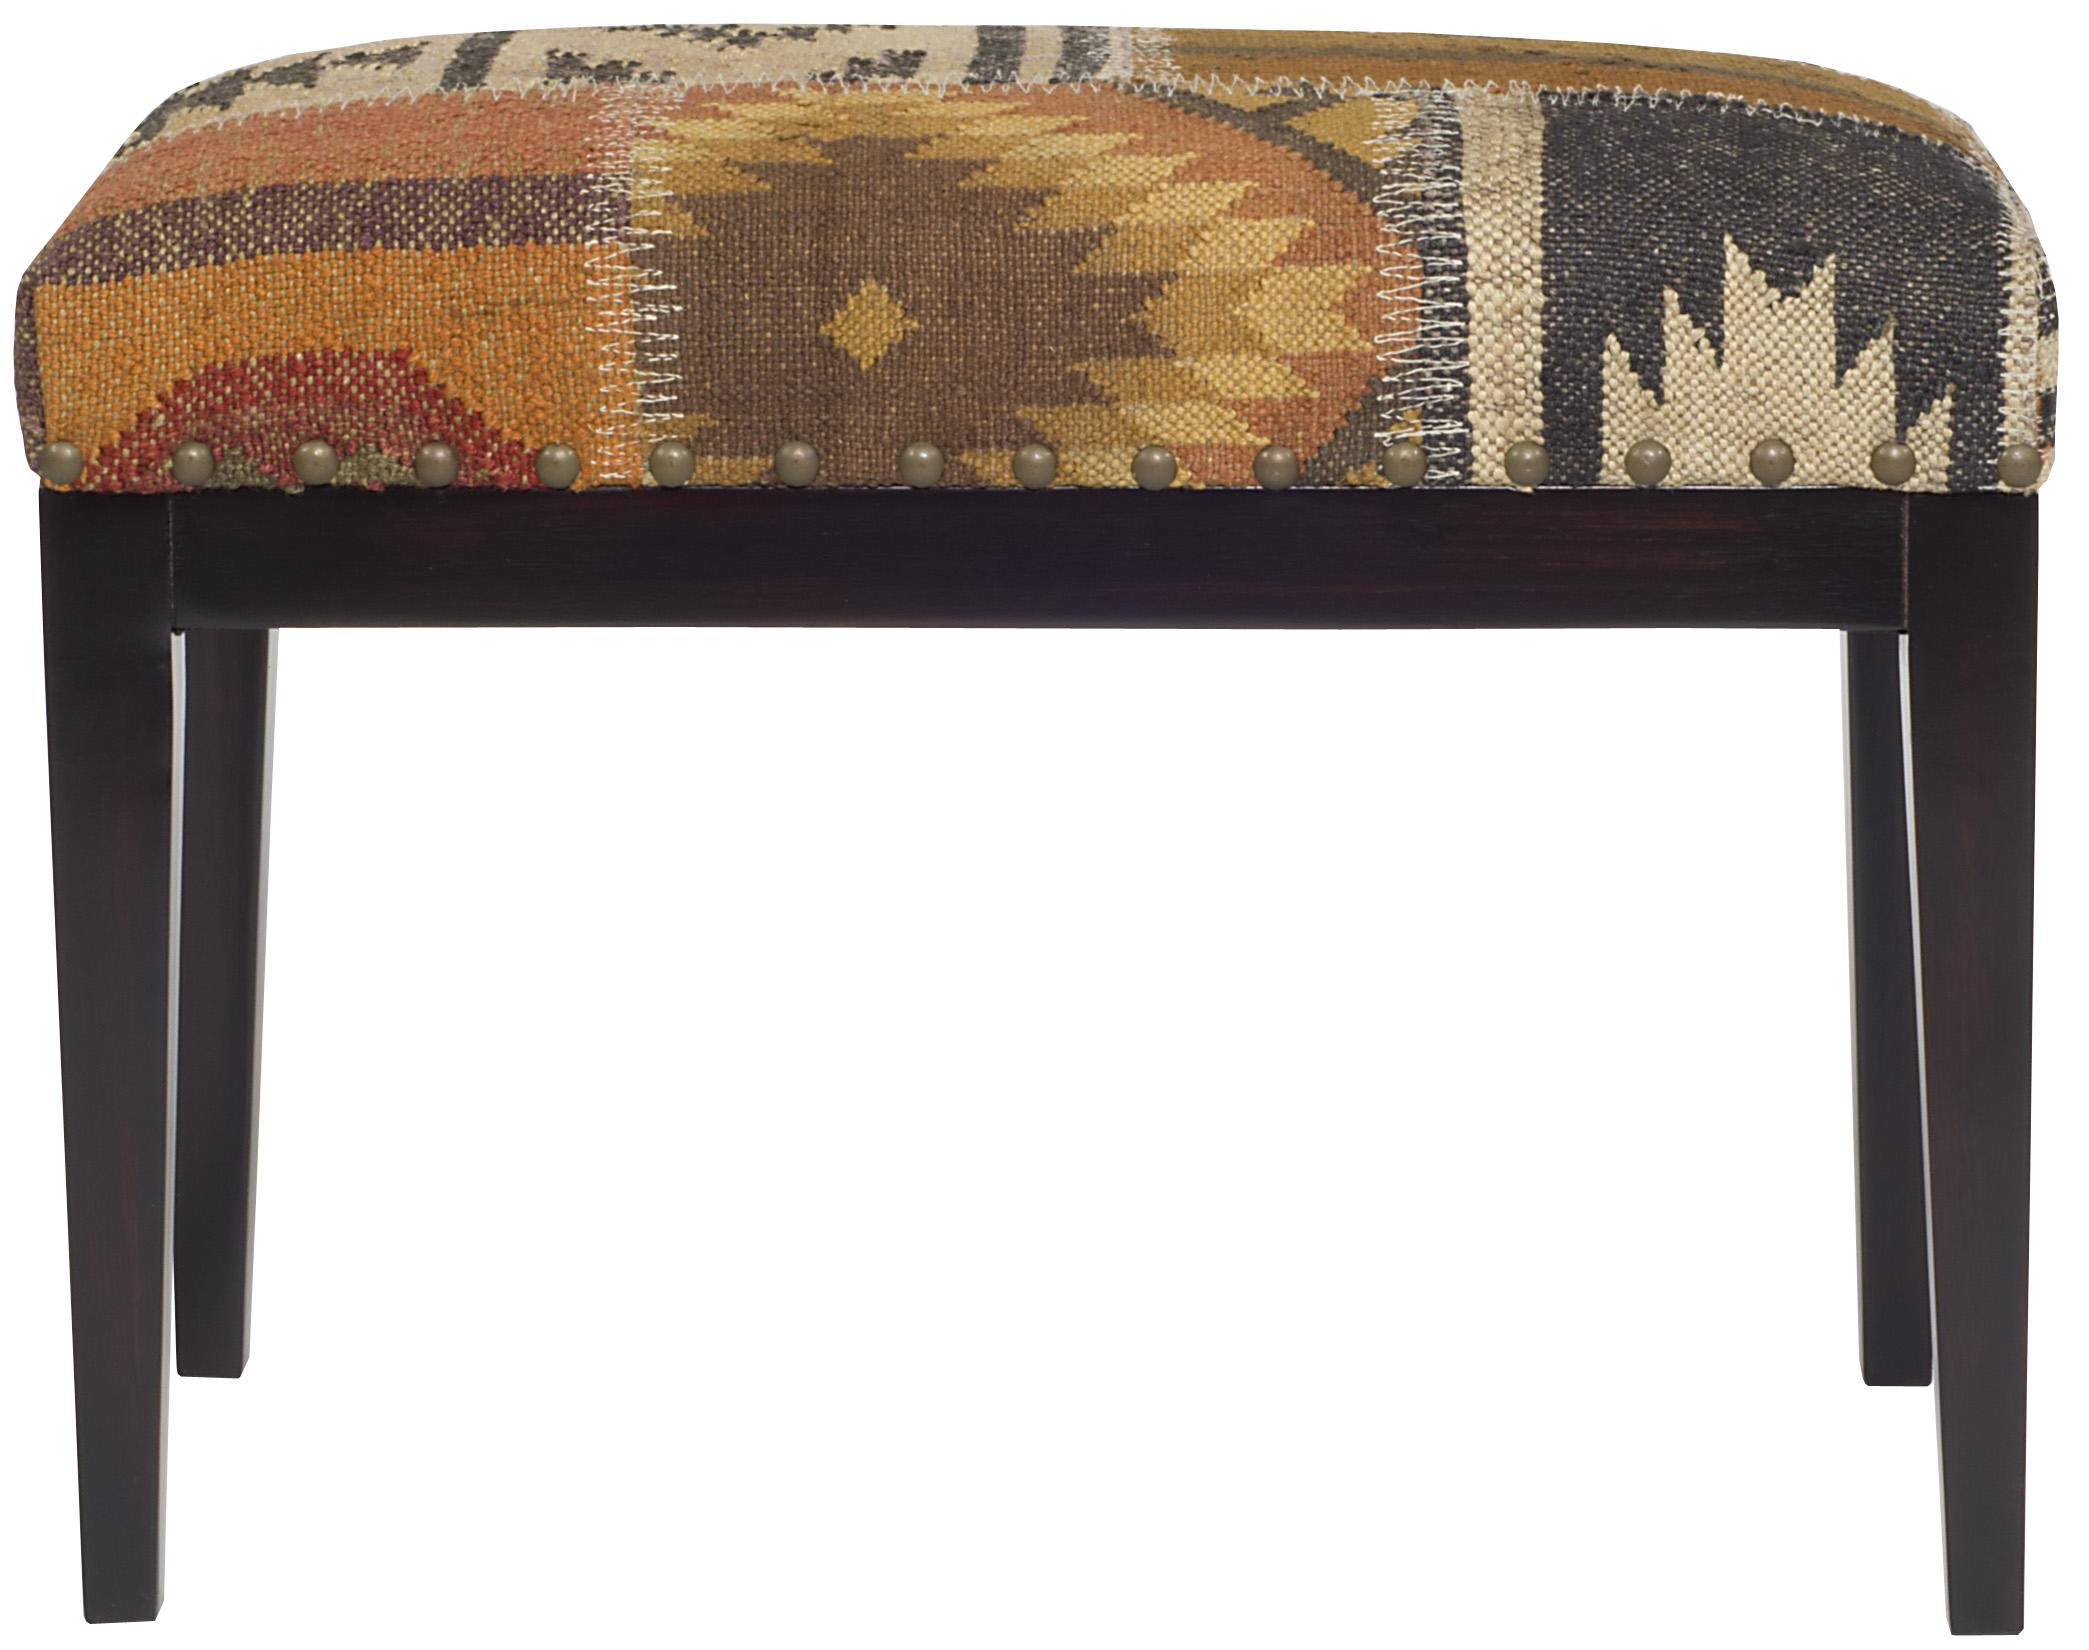 Accent and Entertainment Chests and Tables Ottoman by Vanguard Furniture at Baer's Furniture